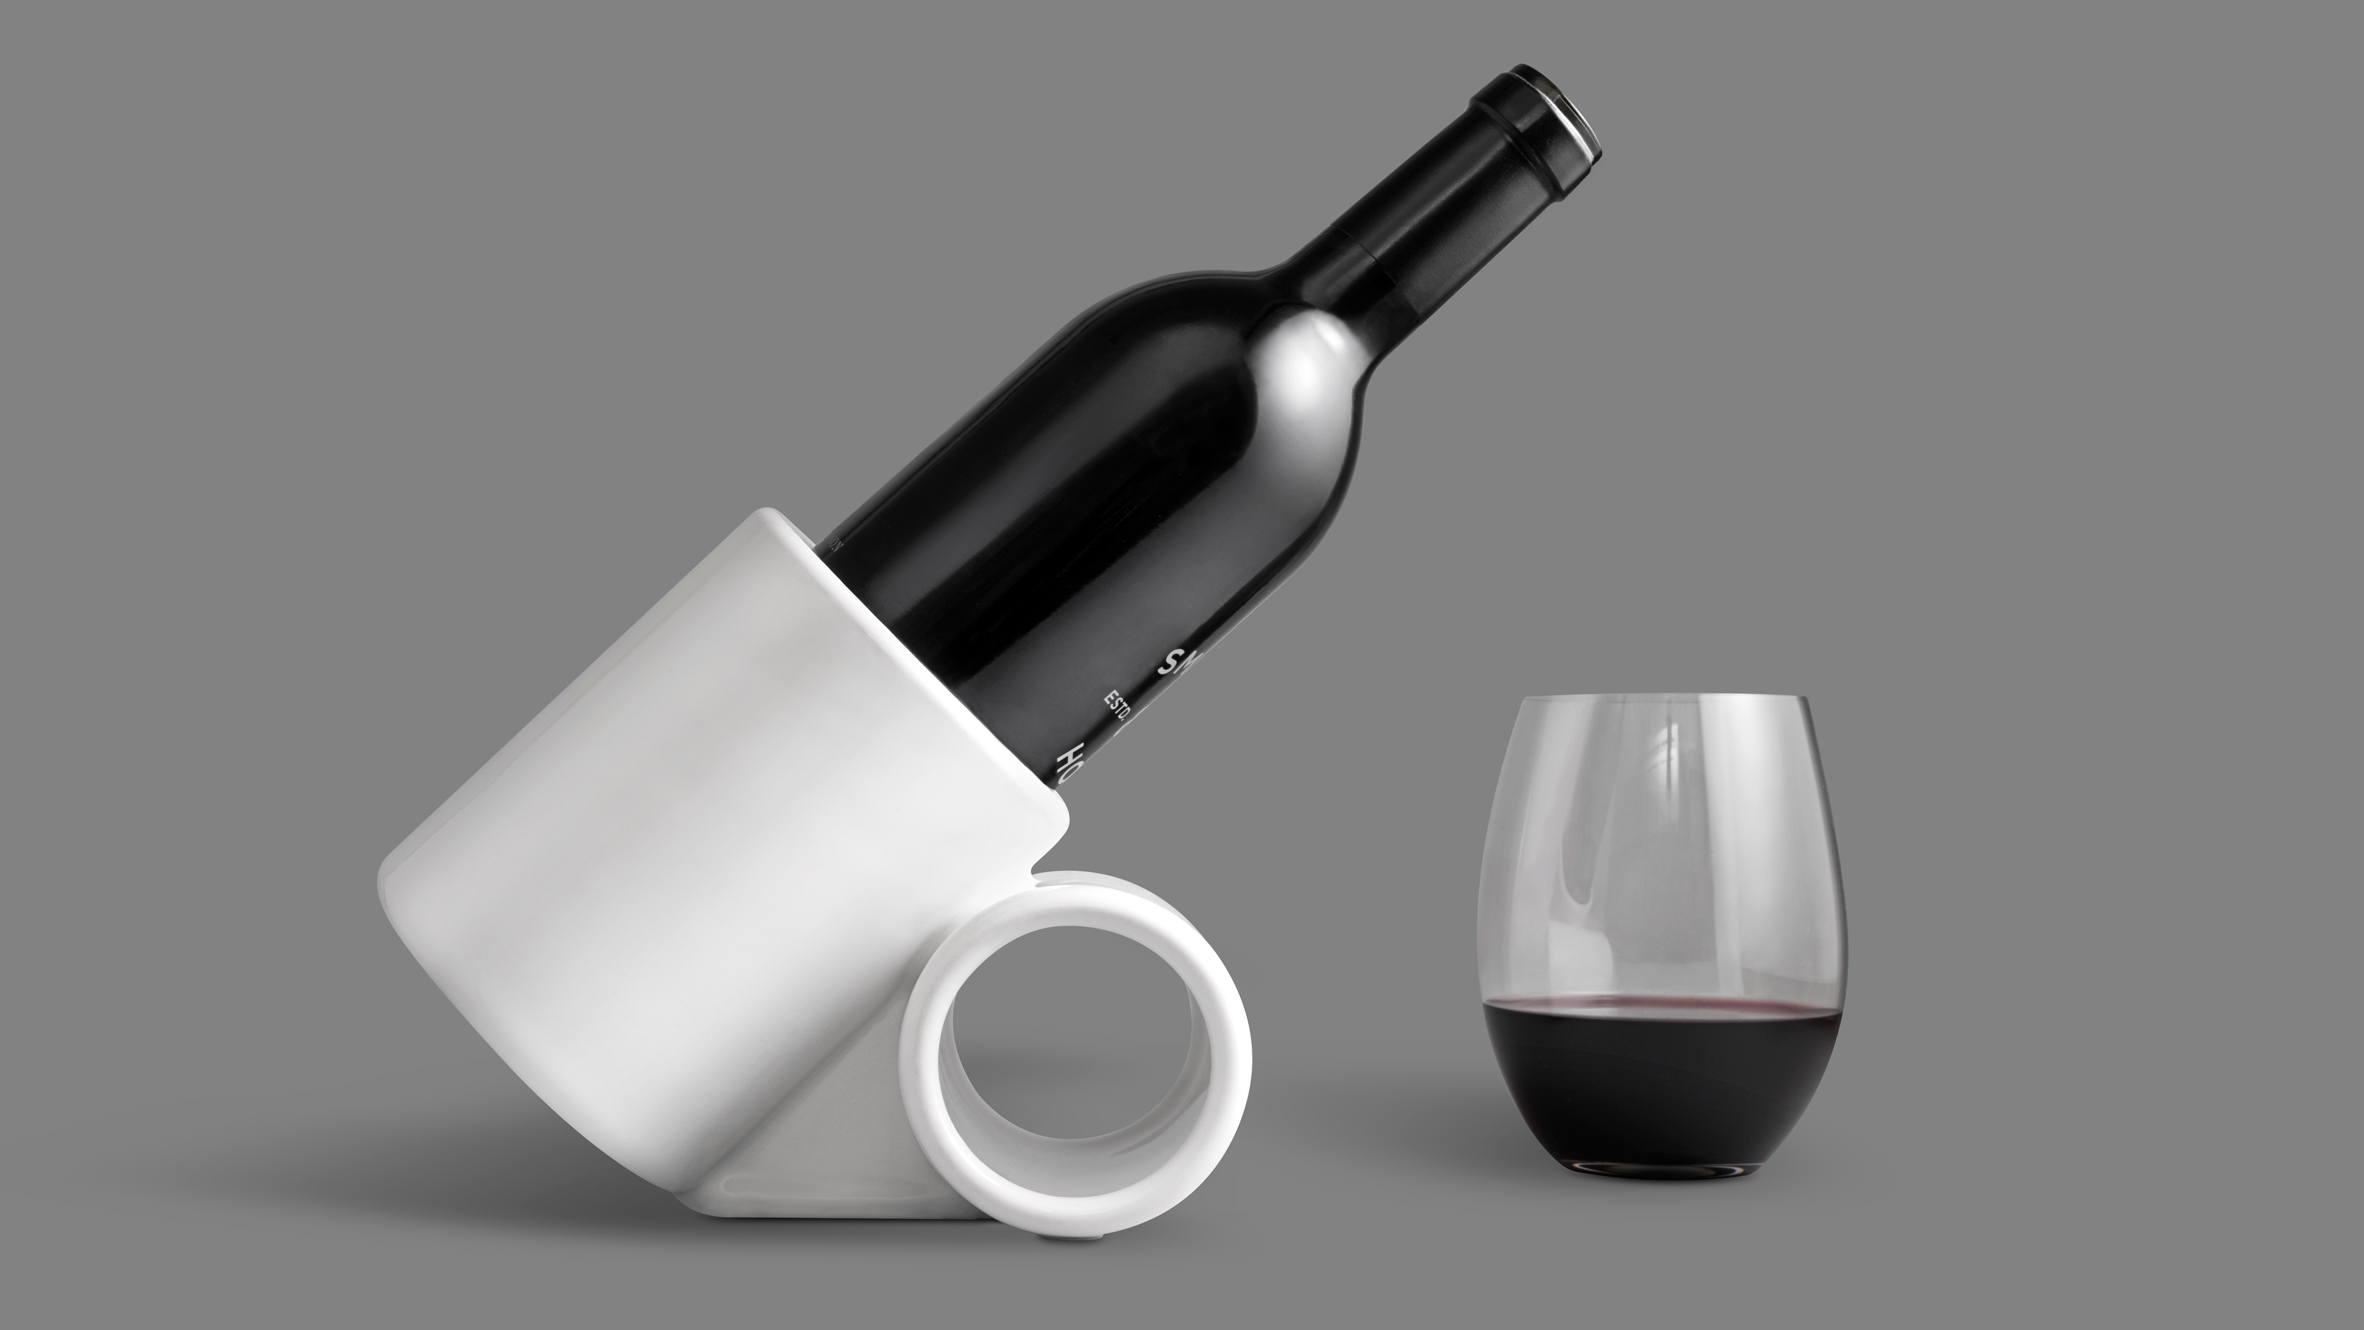 Wine Bottle Storage Angle 3d Printed Wine Tilt Keeps Bottle At Optimum Angle For Aeration